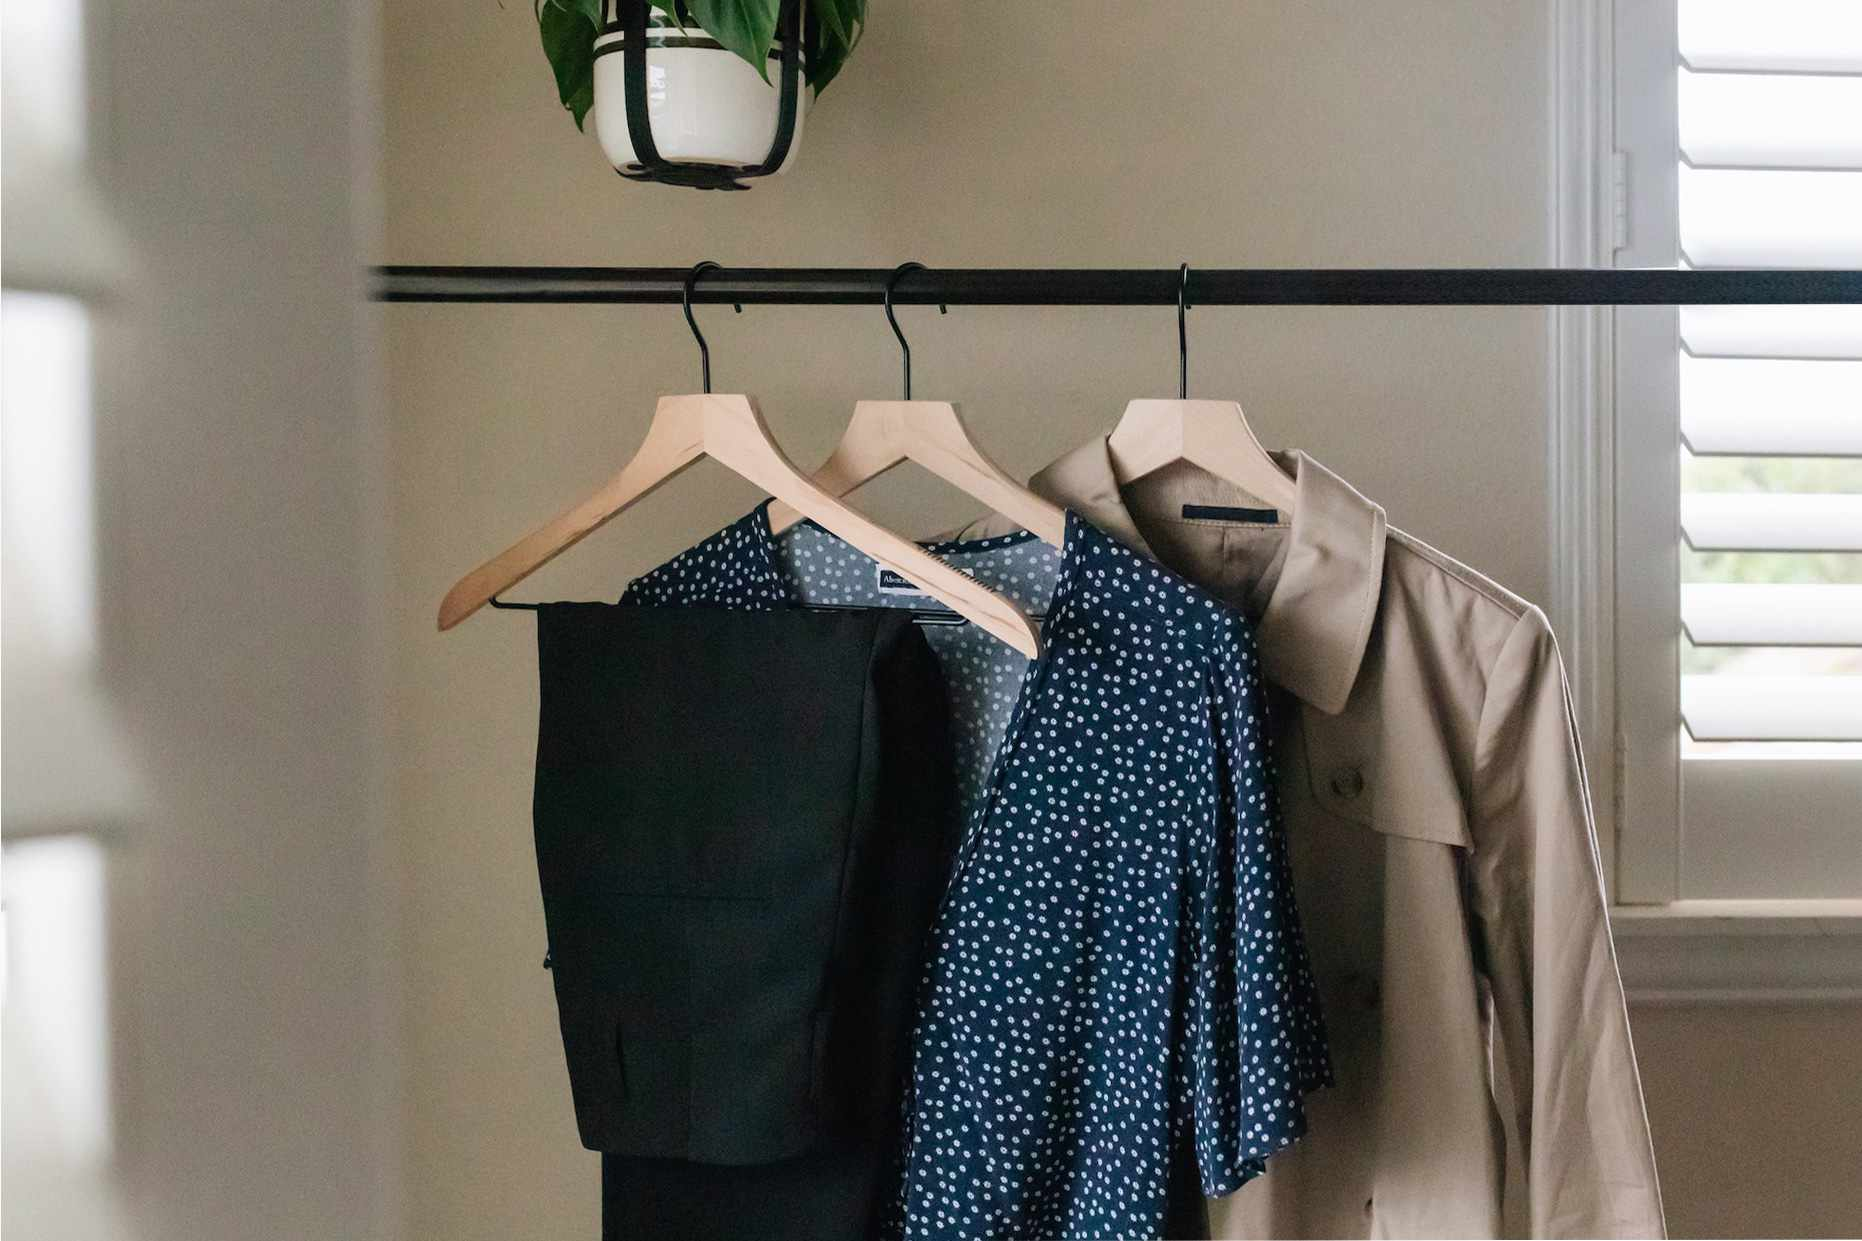 the next day's clothing hanging on a rack